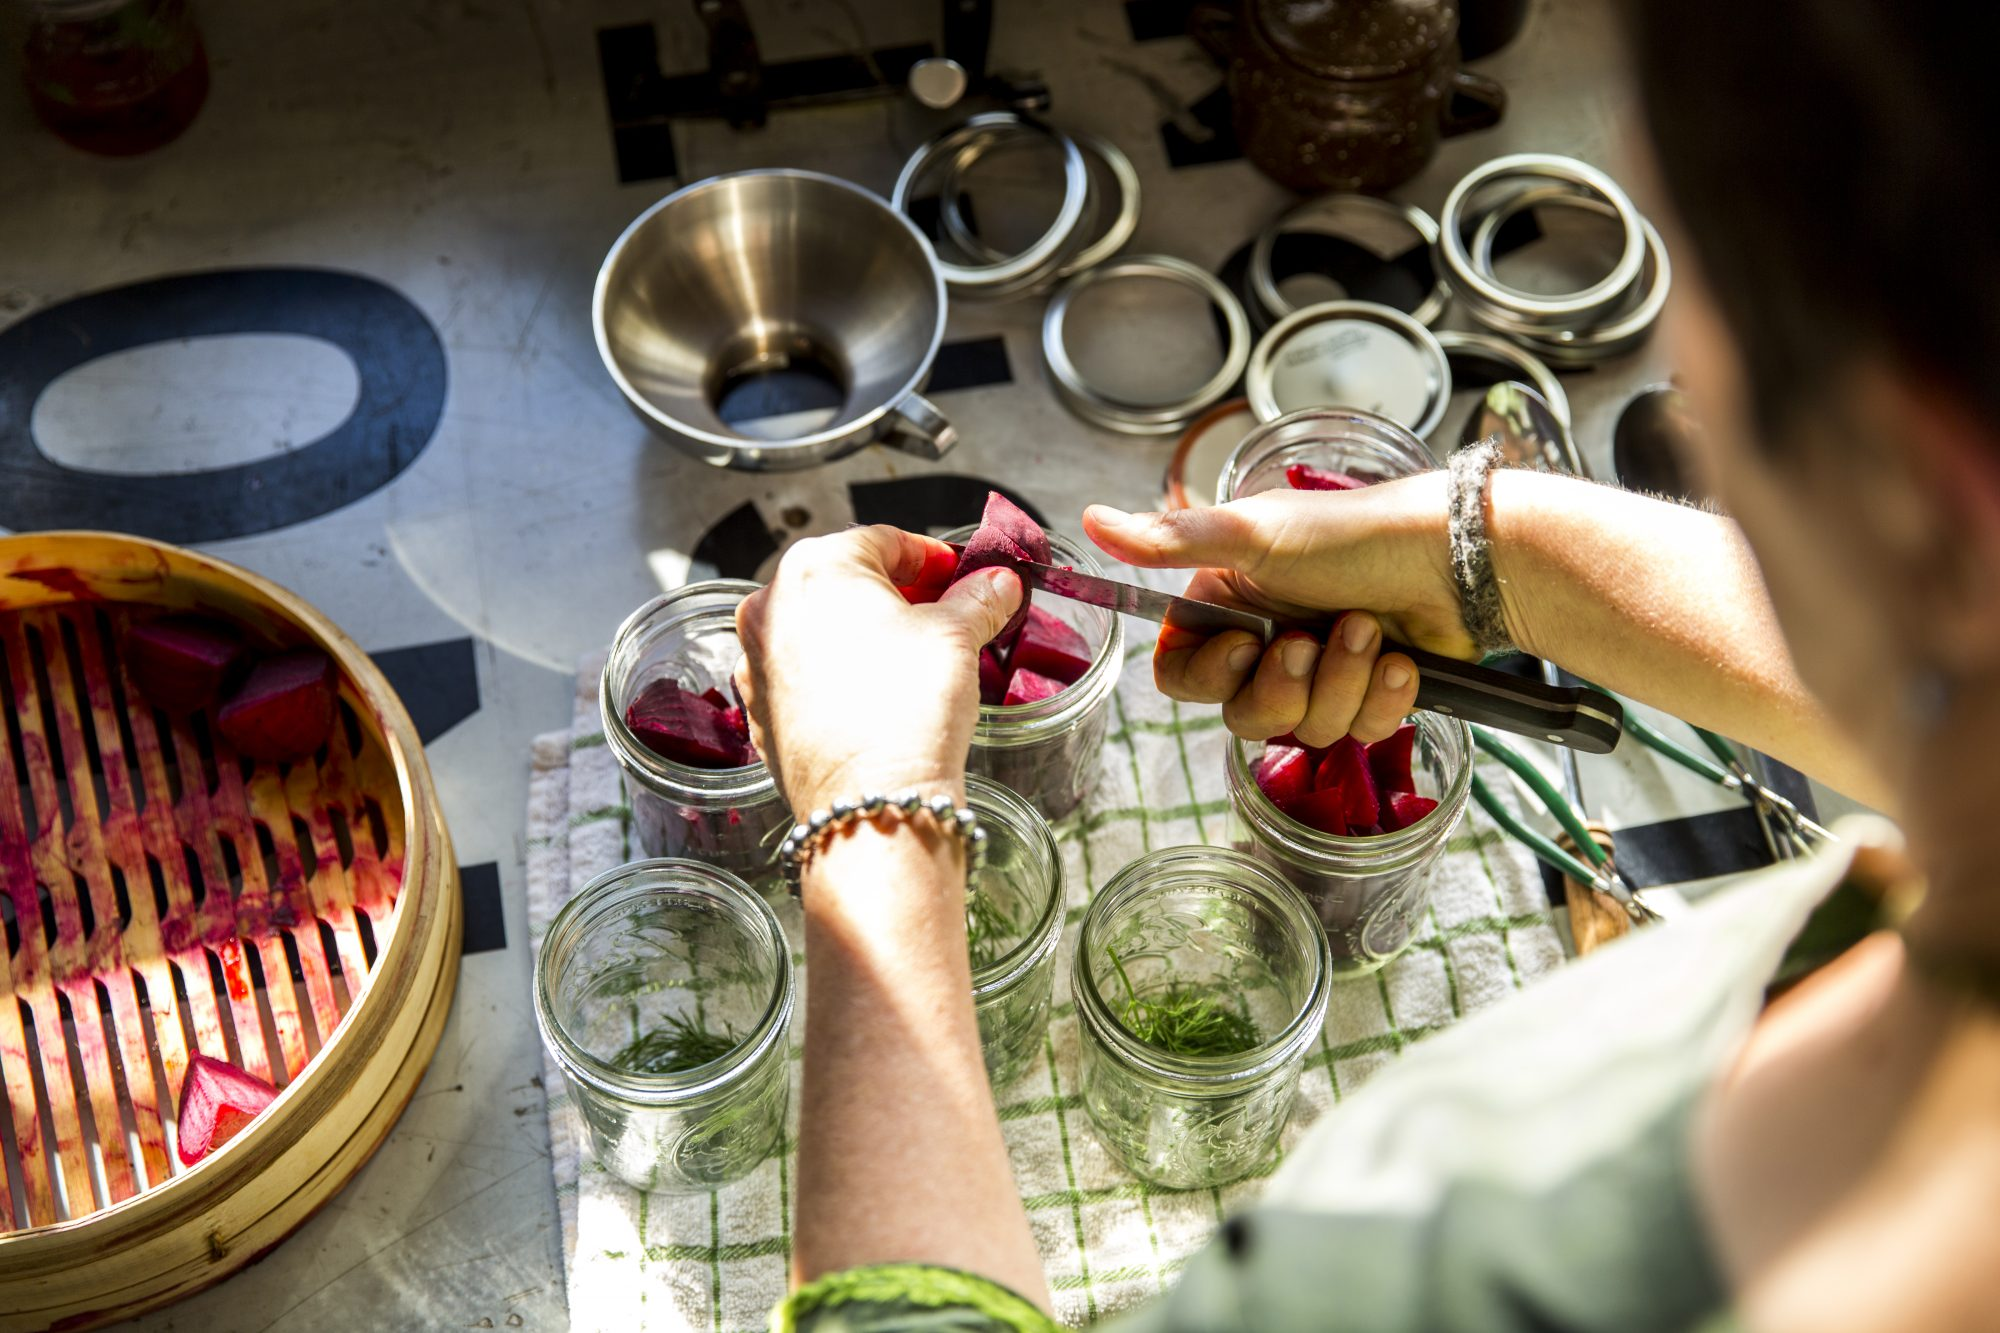 Over the shoulder view of woman slicing beetroot into preserves jar in kitchen